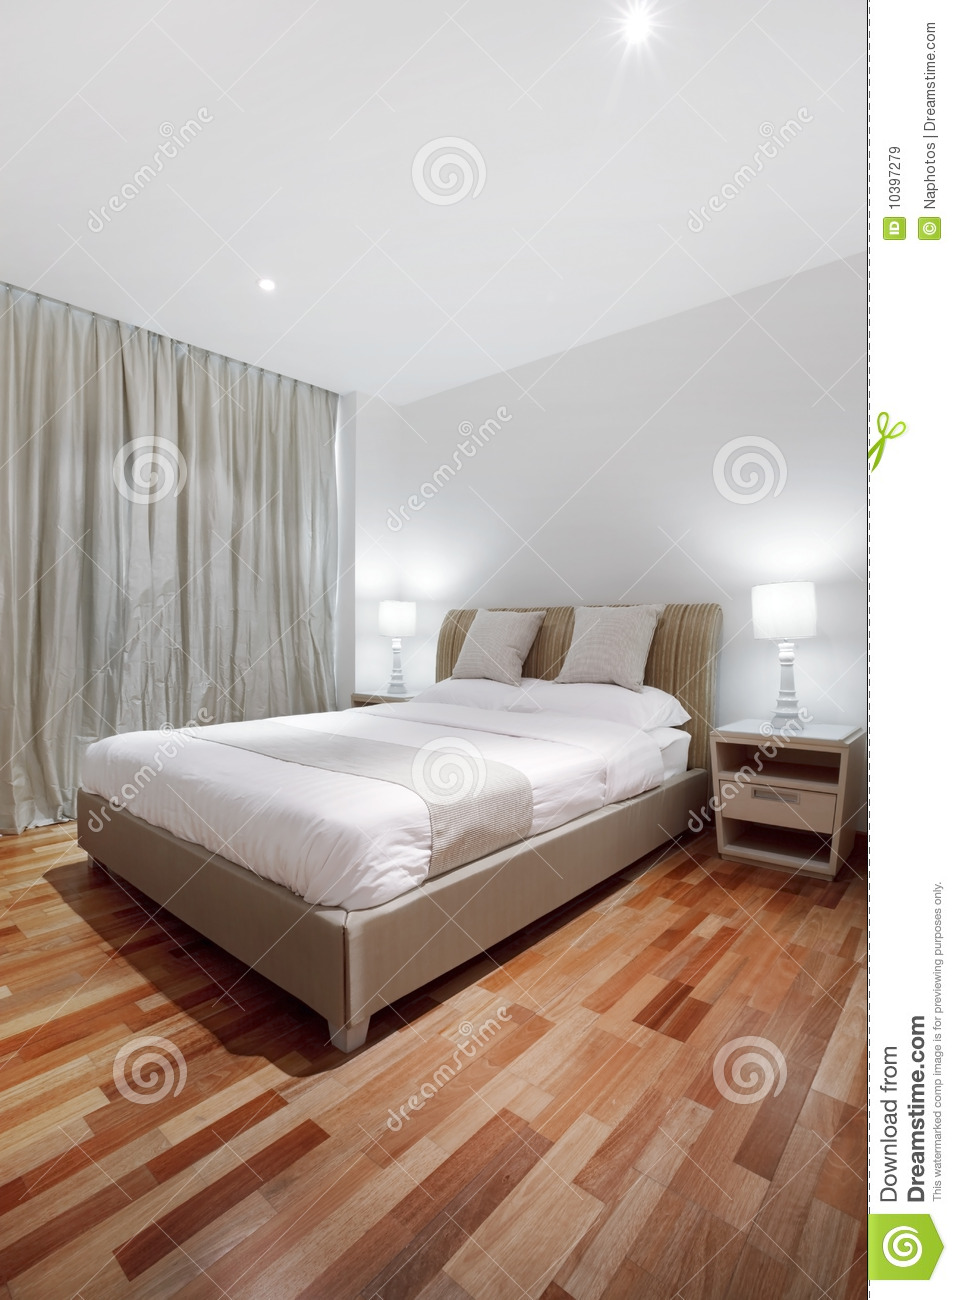 Parquet floor in bedroom stock image Image of awake